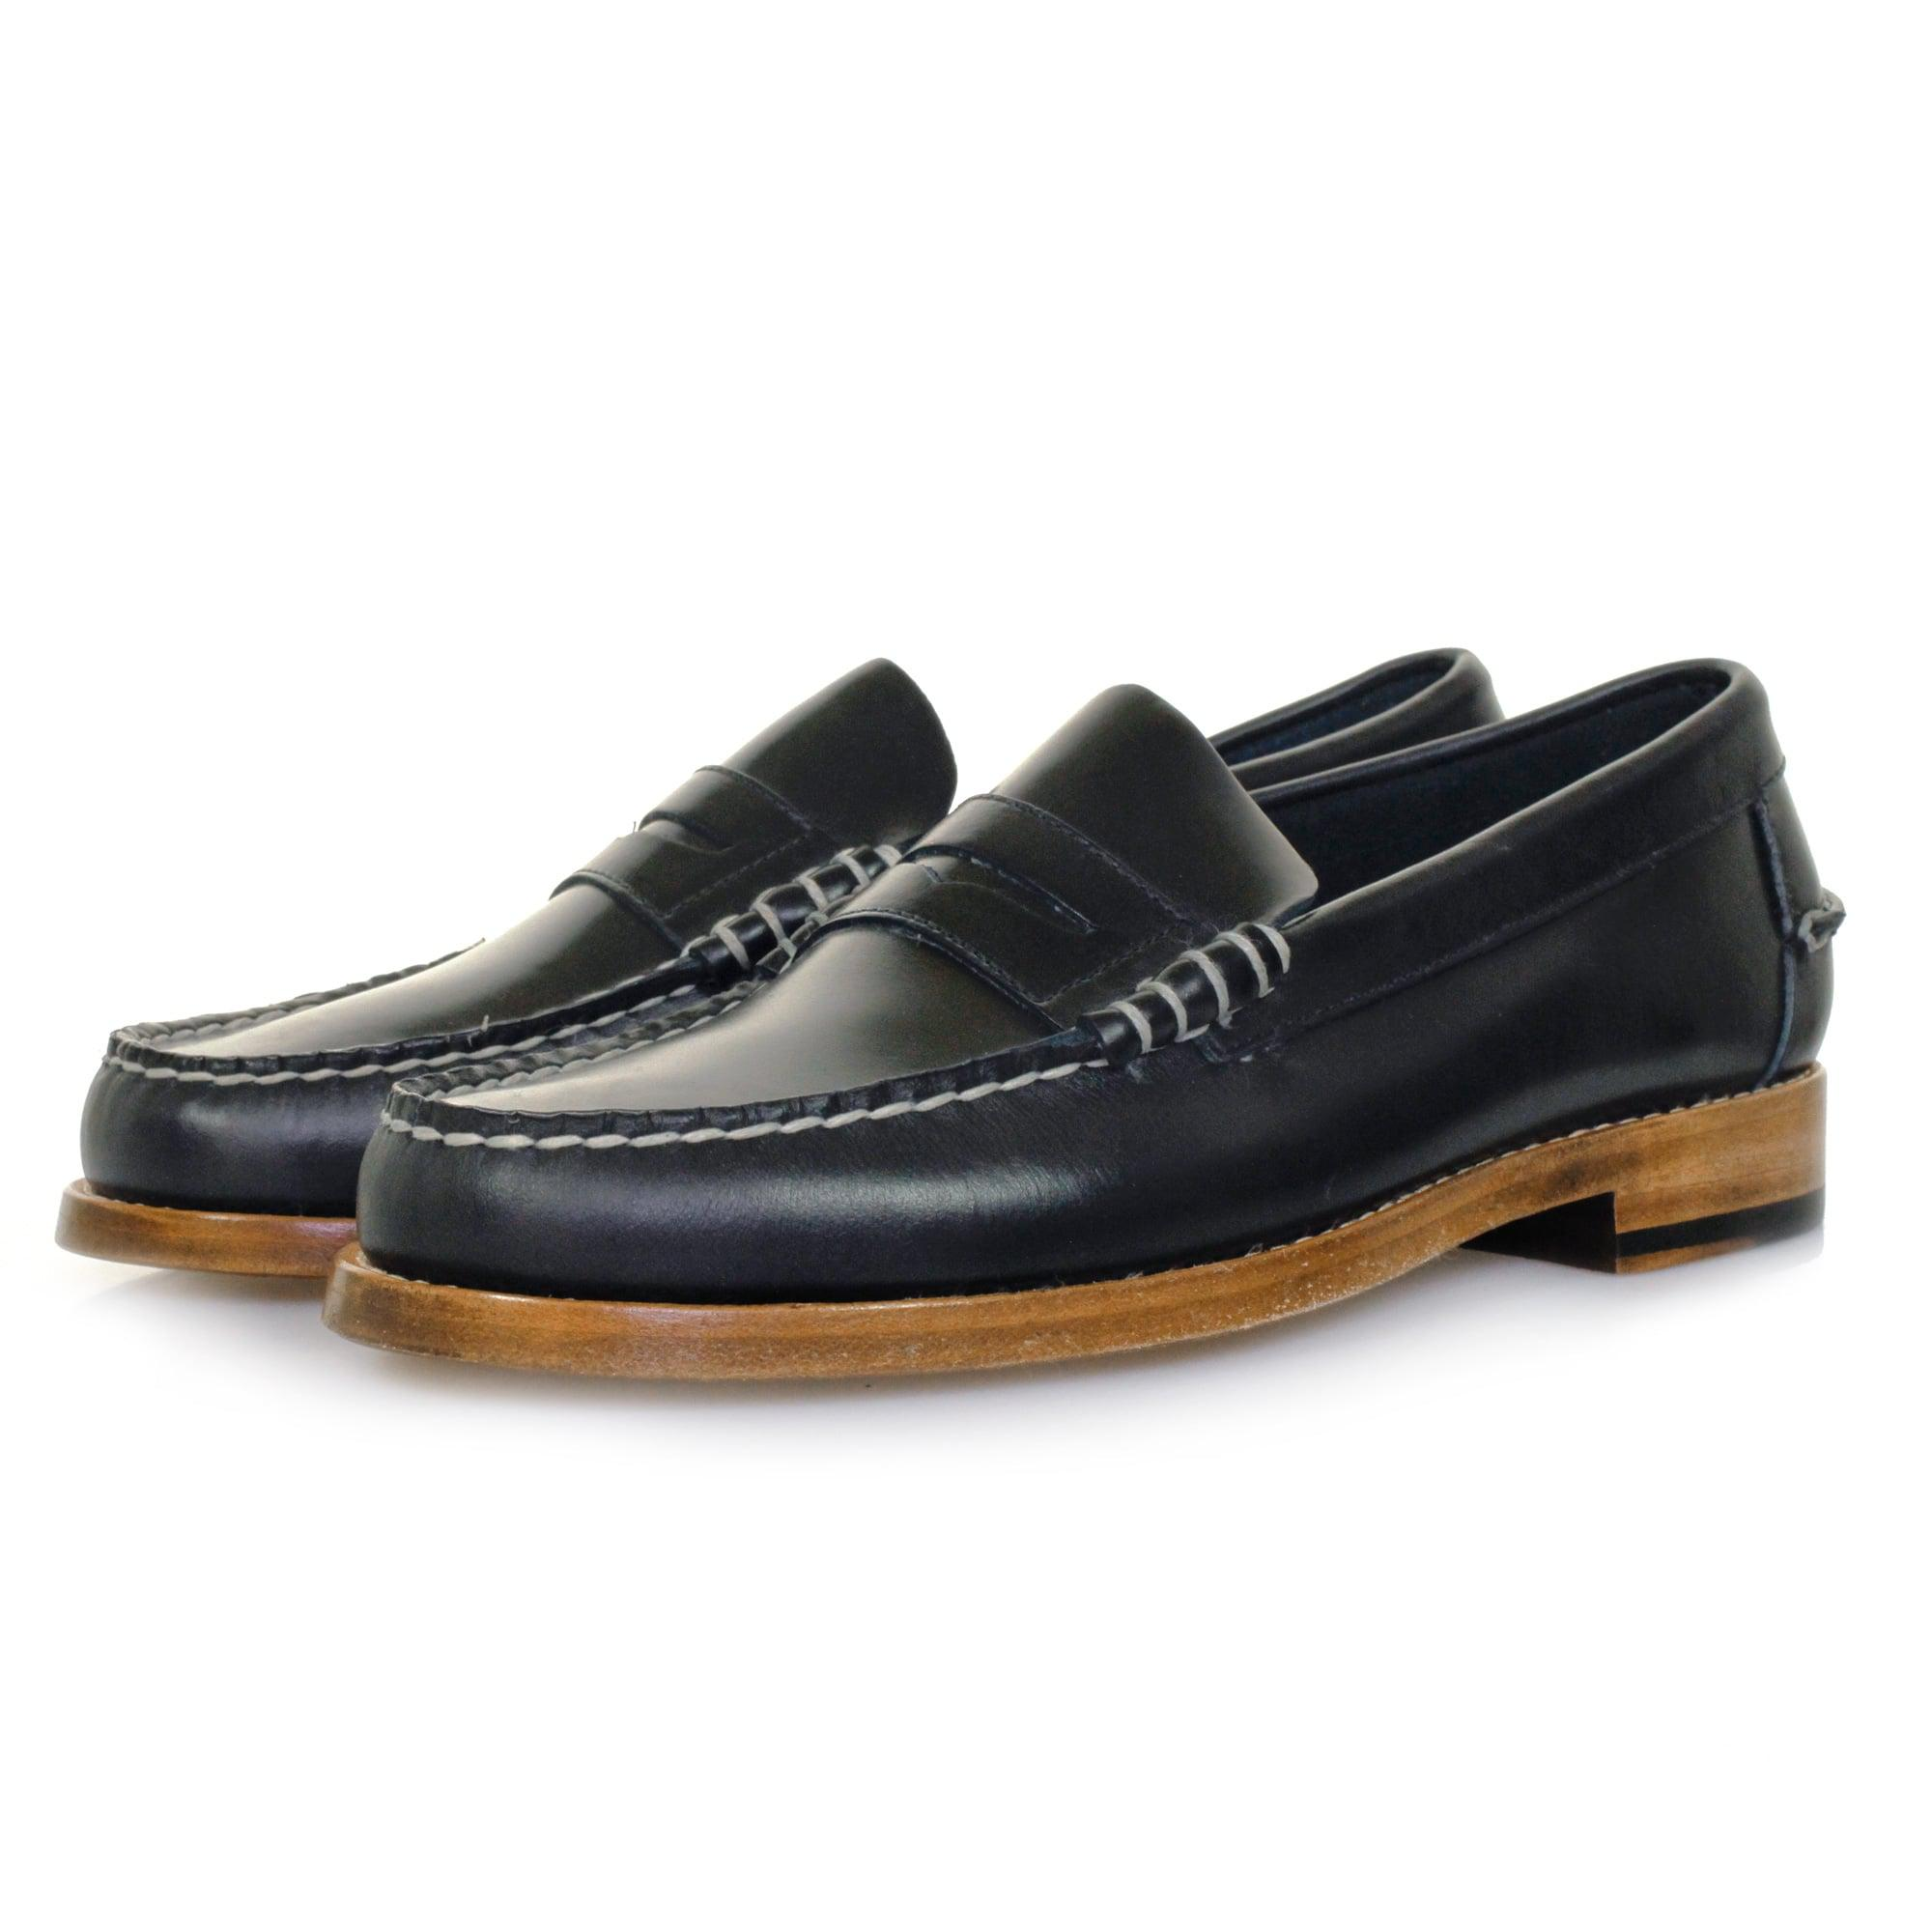 Sebago Leather Legacy Penny Navy Loafer Shoe B766085 in ...